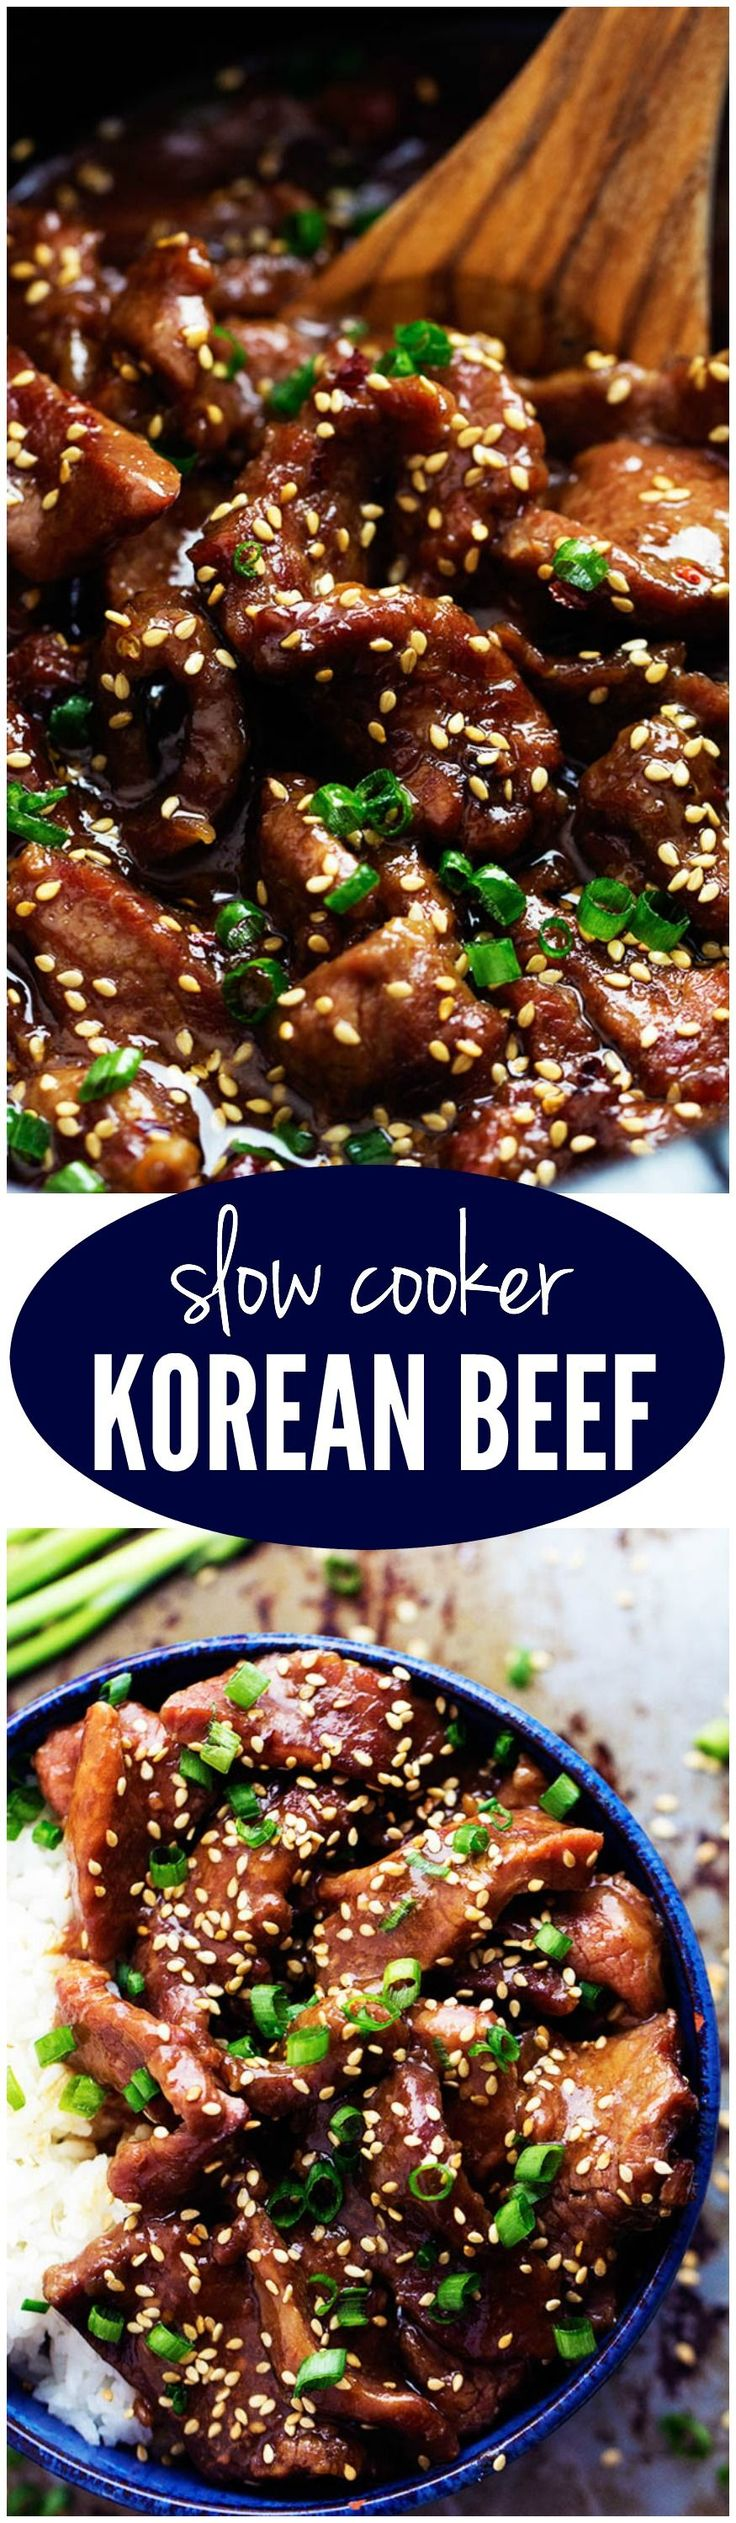 Korean beef - slow cooker